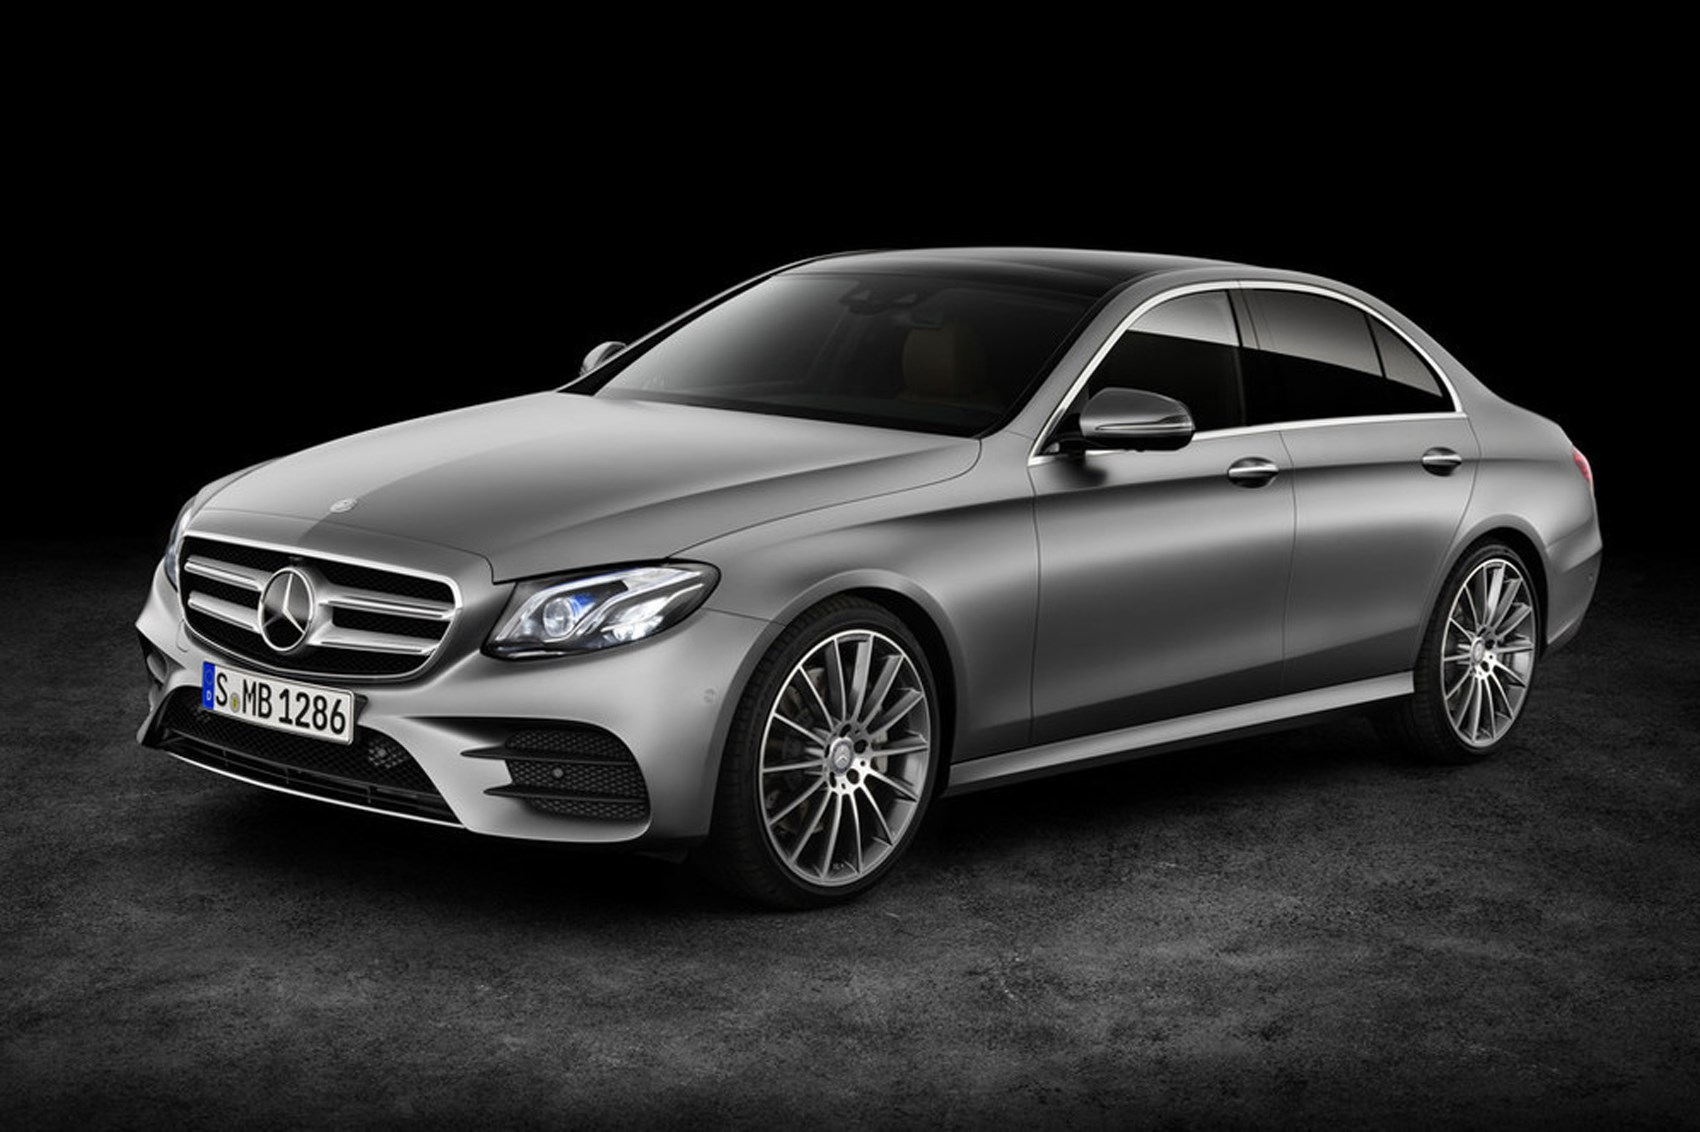 Like a C-class, only bigger: new 2016 Mercedes E-class revealed in ...